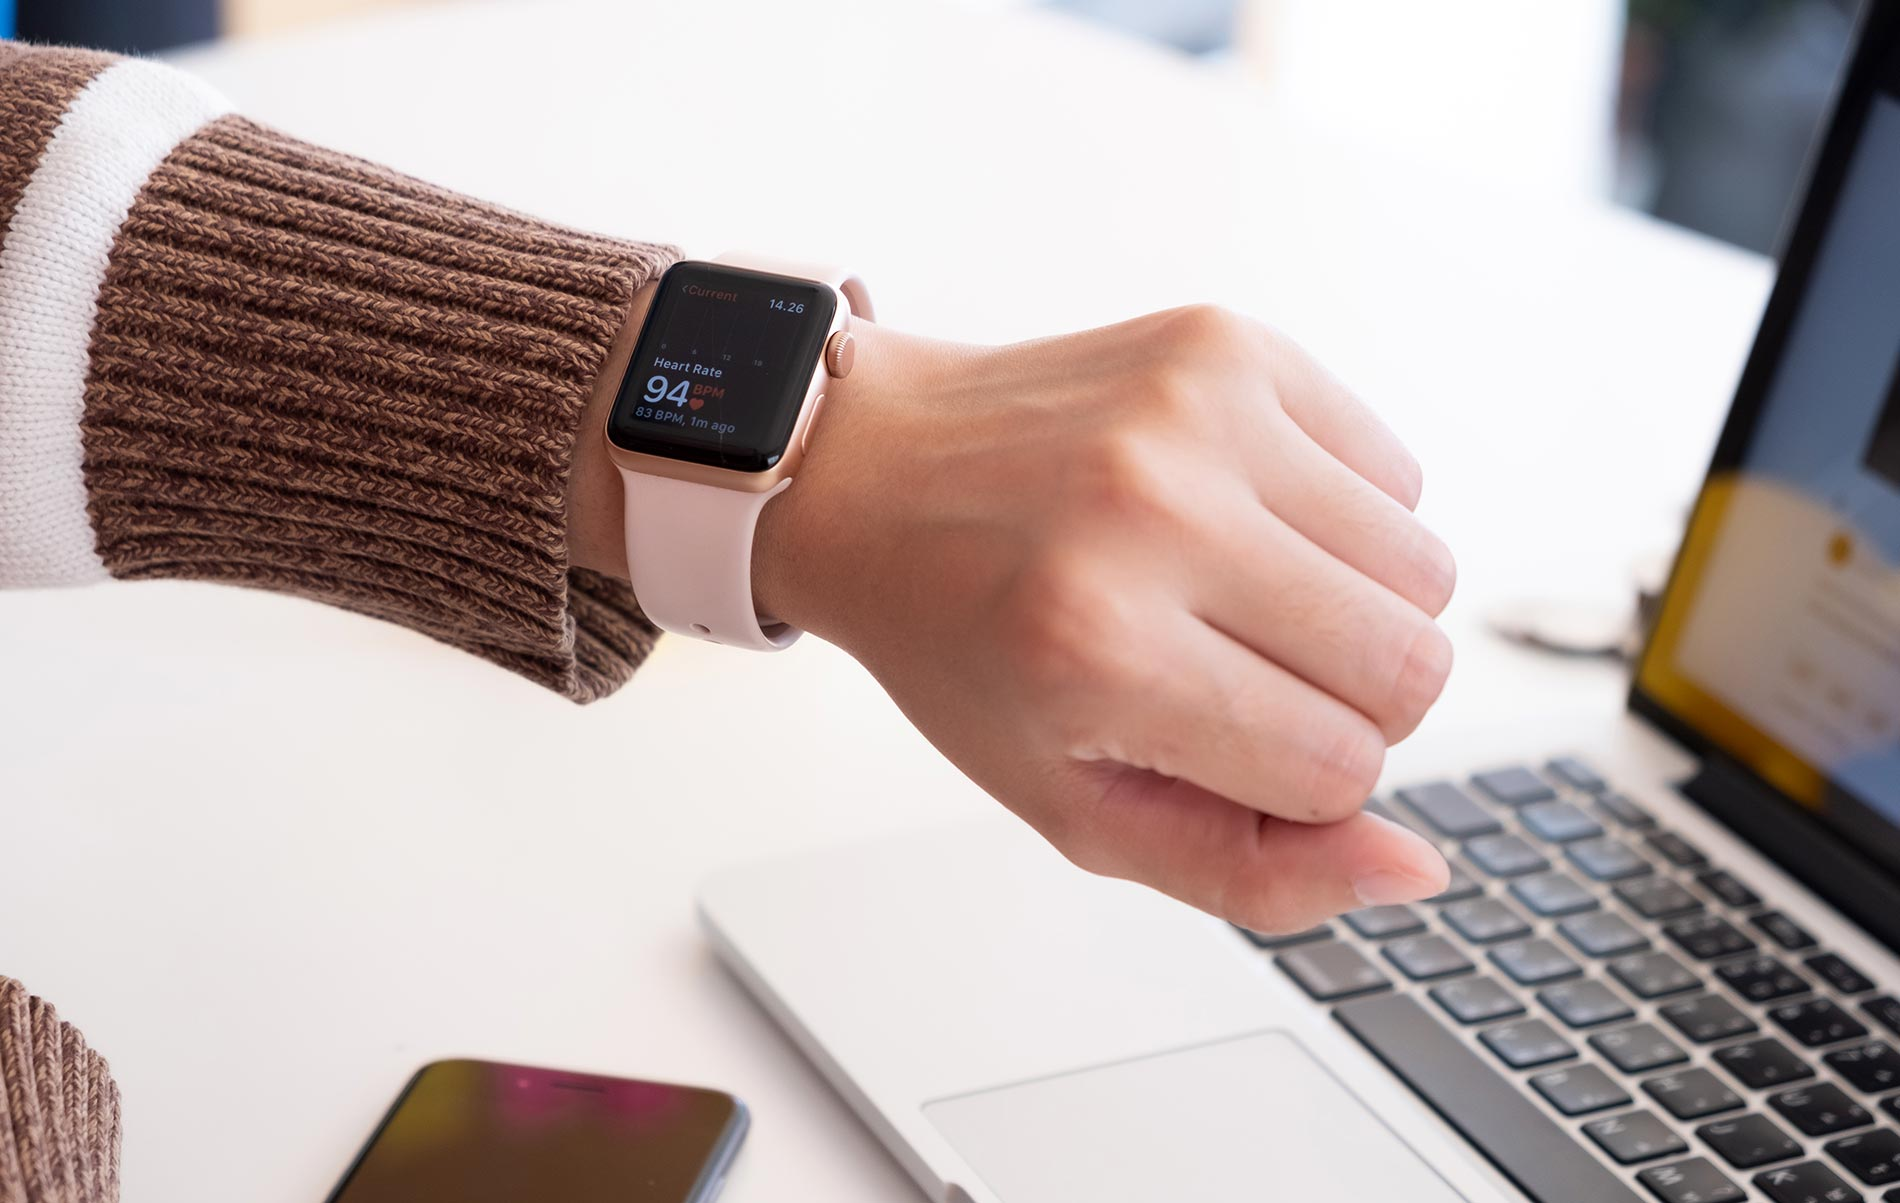 Which apps are compatible with Apple watches